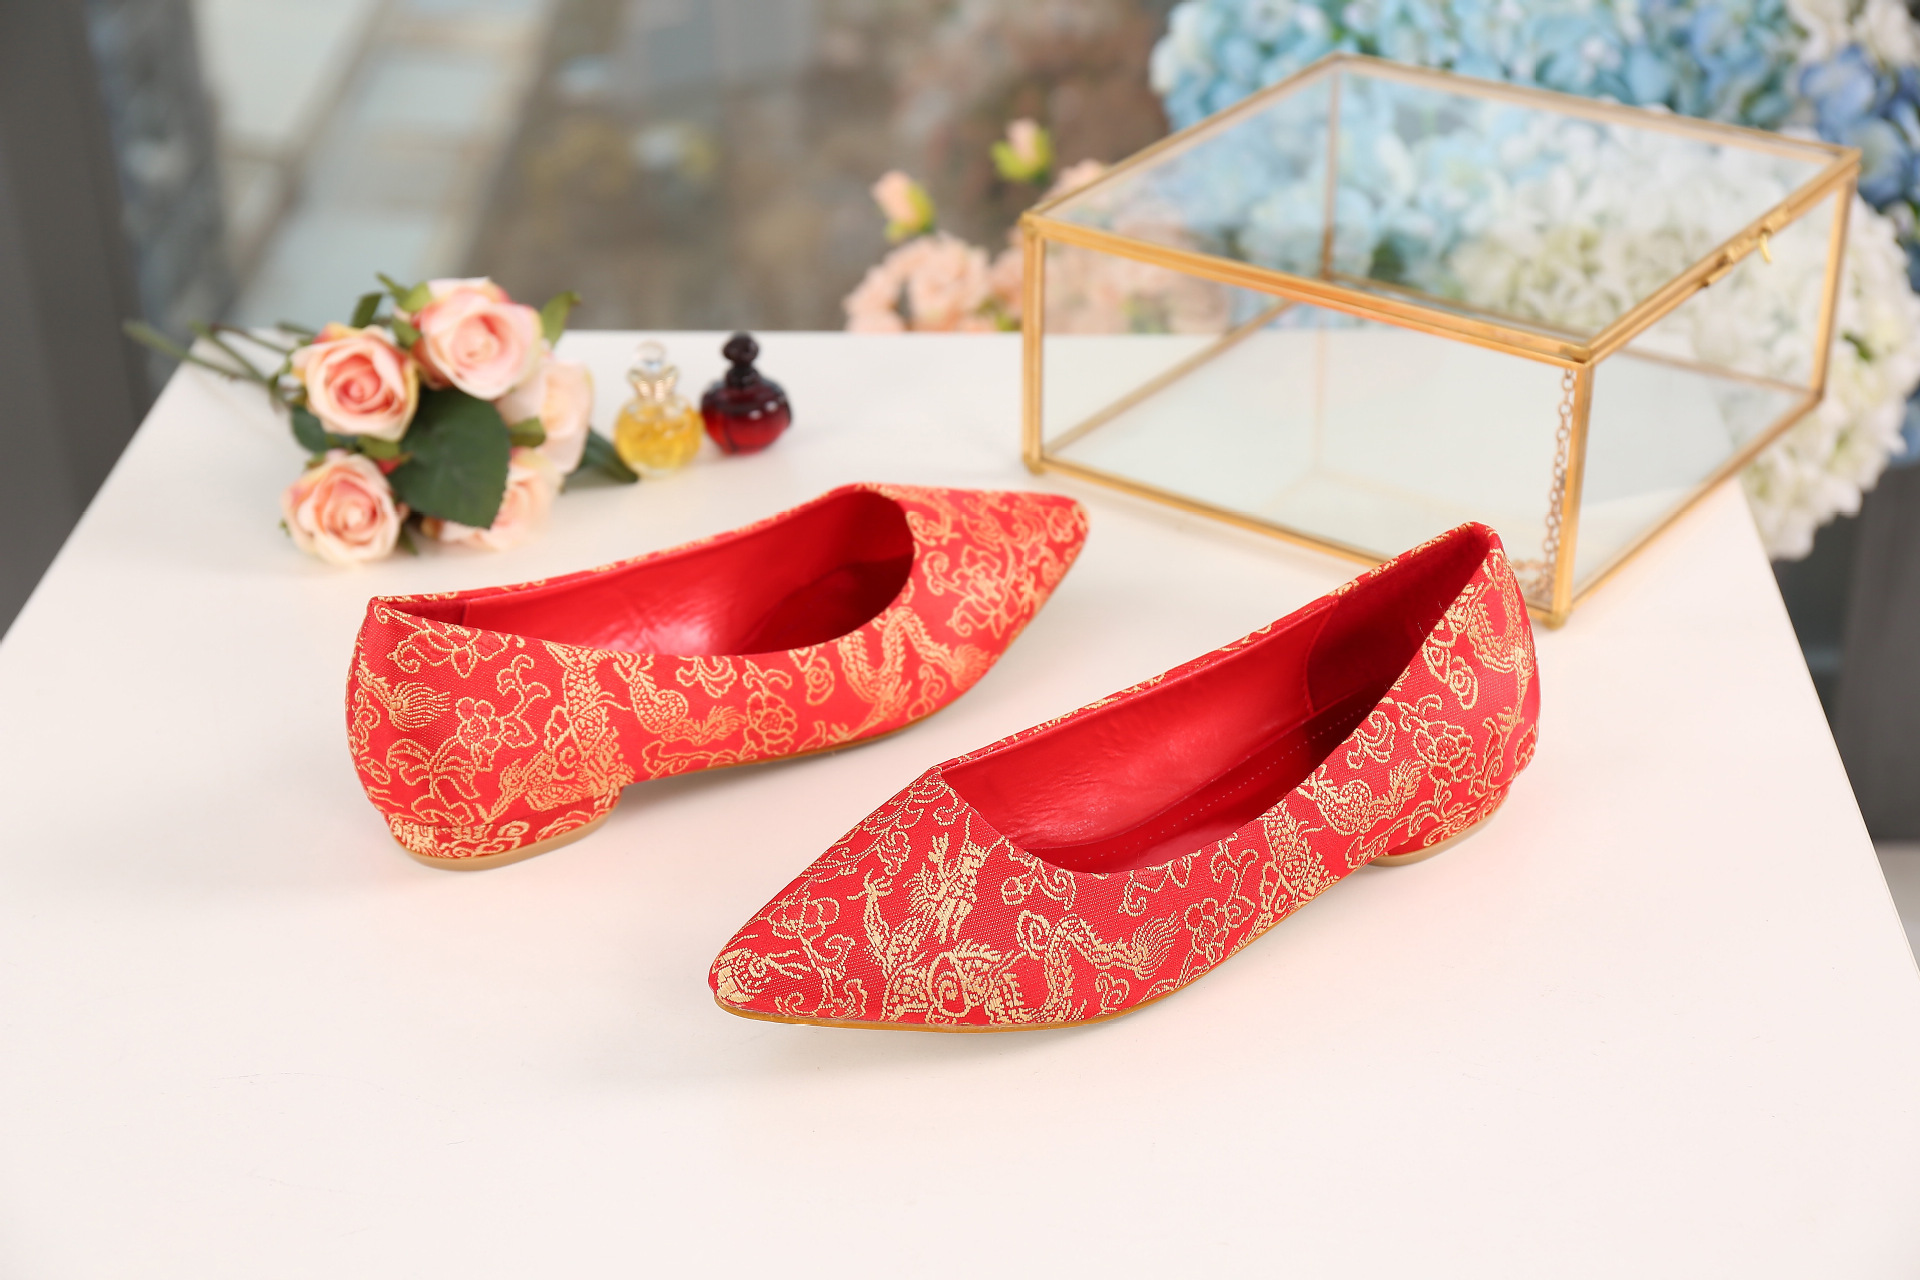 Marriage Shoes Red Chinese Style Embroidery Embroidered Ellipse With Low Heel Pointed Bridal Shoes Wedding Shoes Red Shoes Cheon